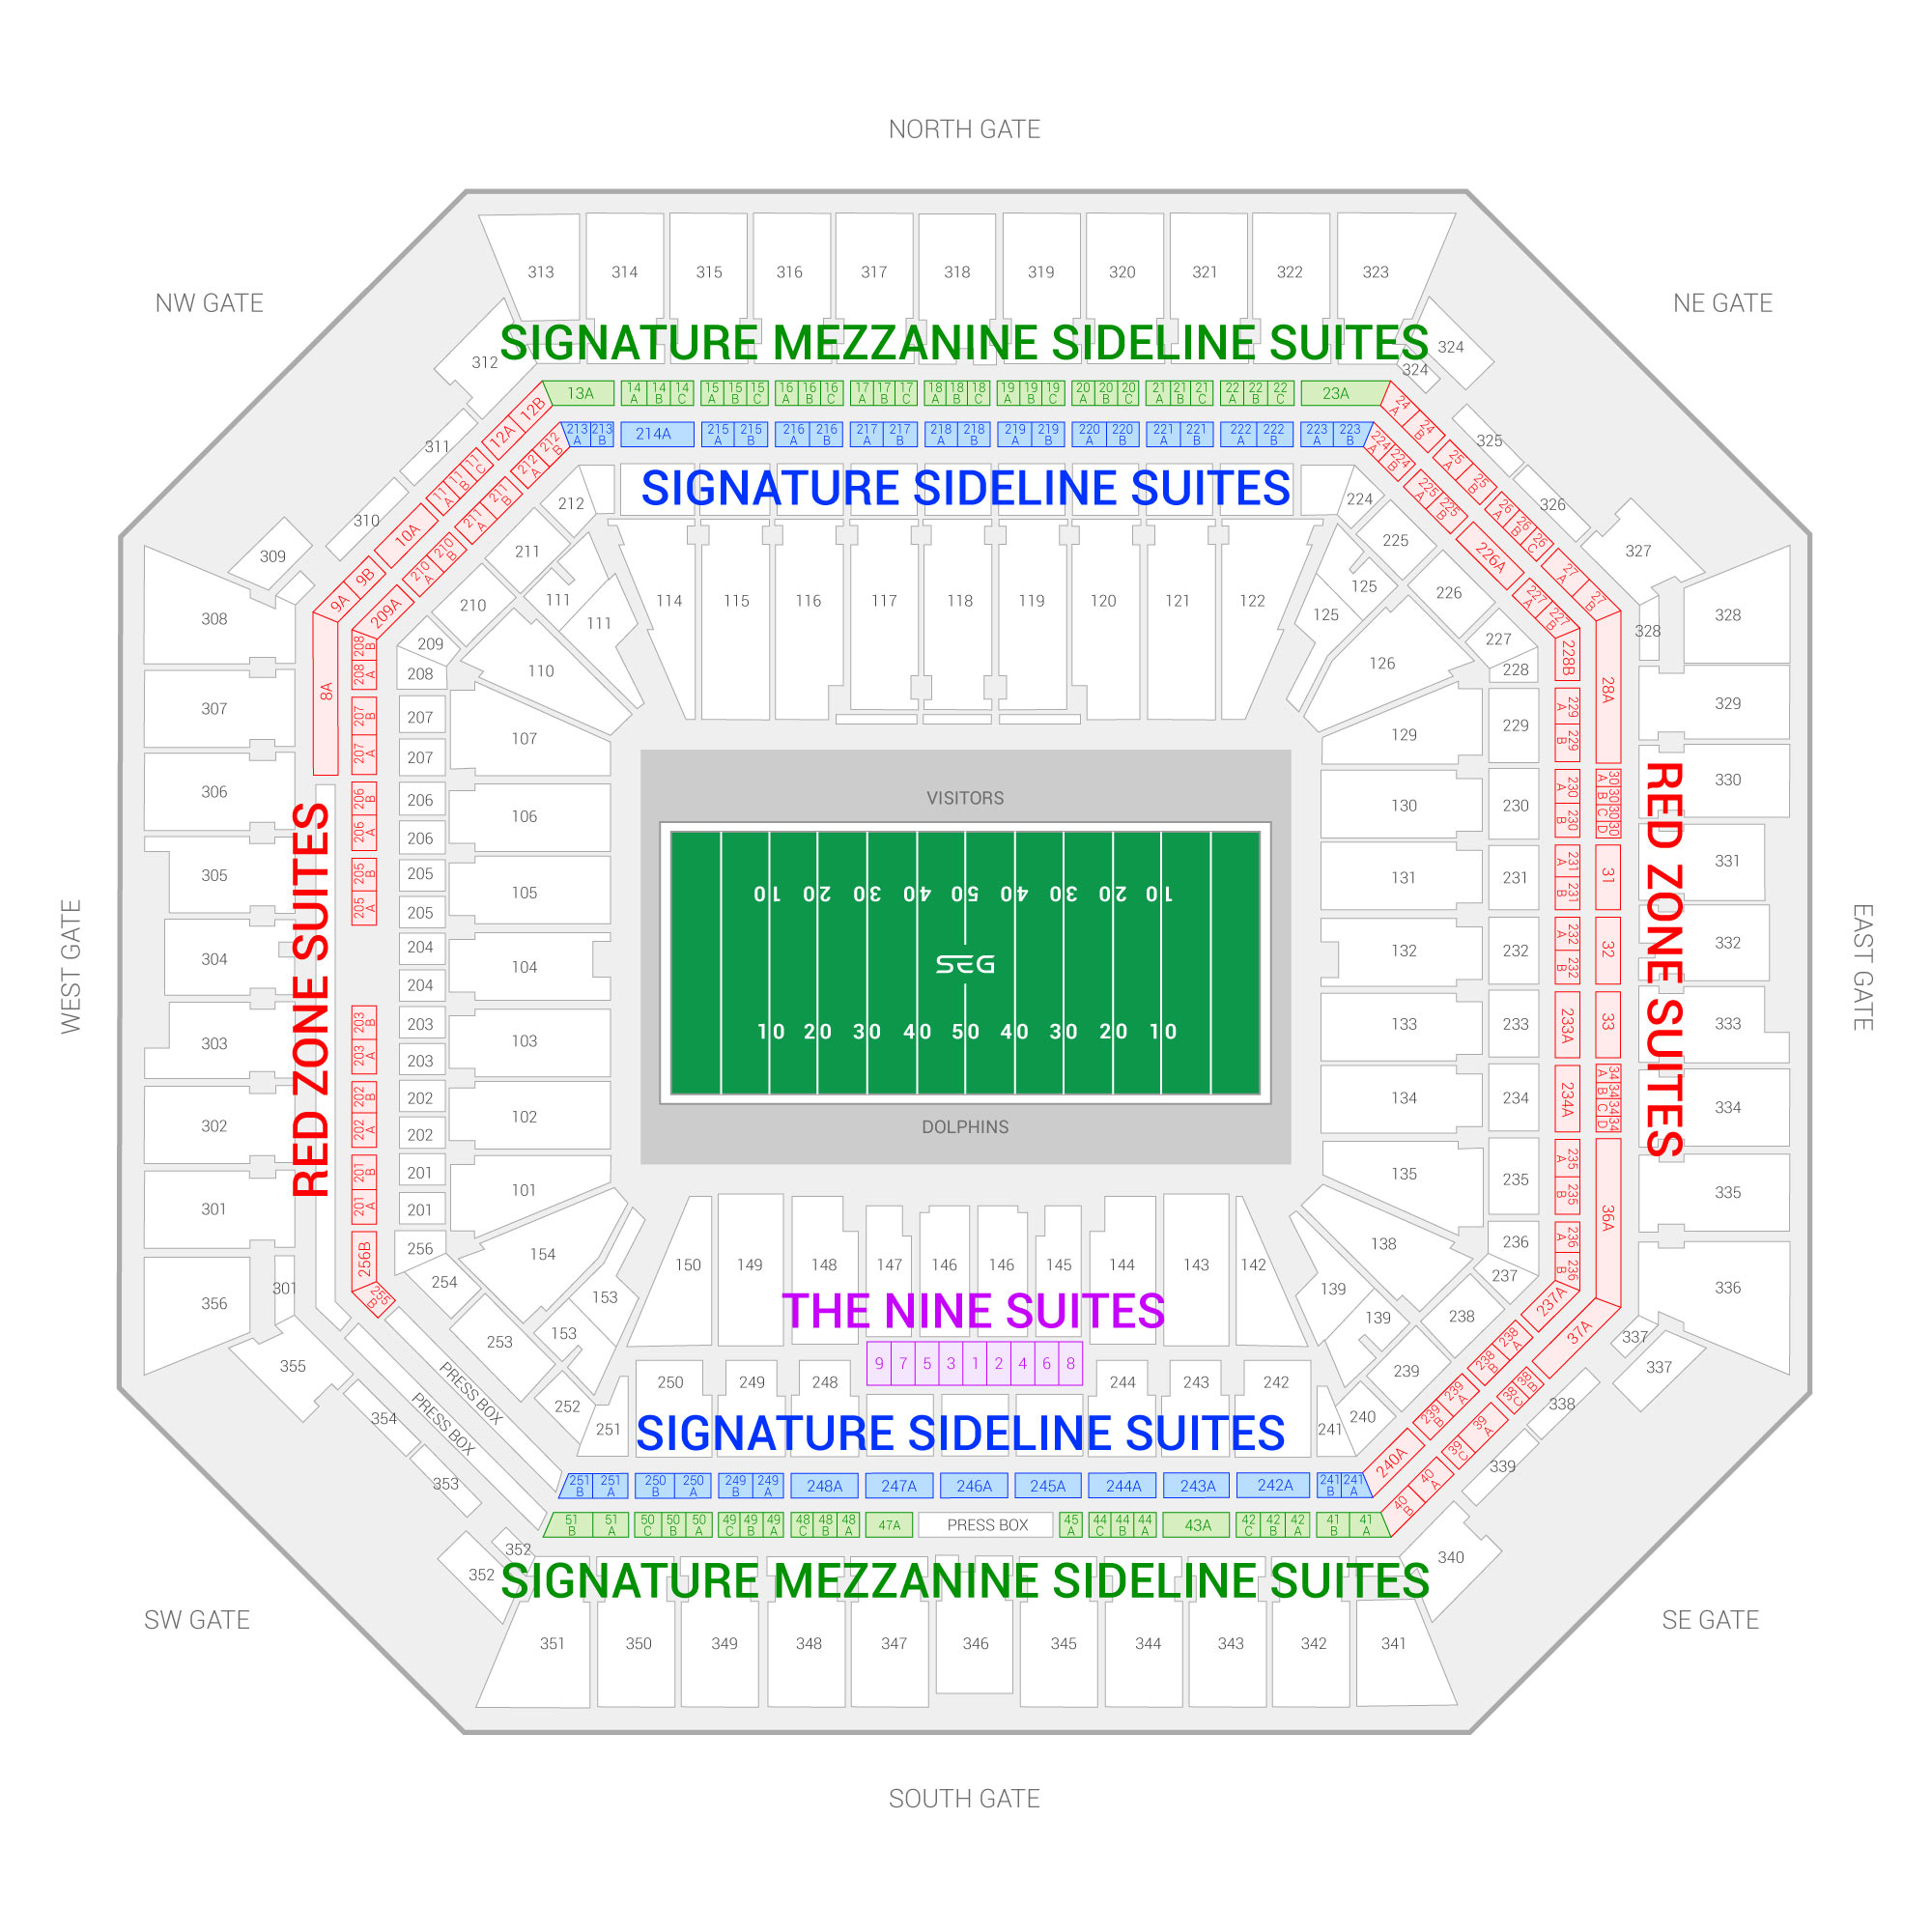 Hard Rock Stadium / Miami Dolphins Suite Map and Seating Chart